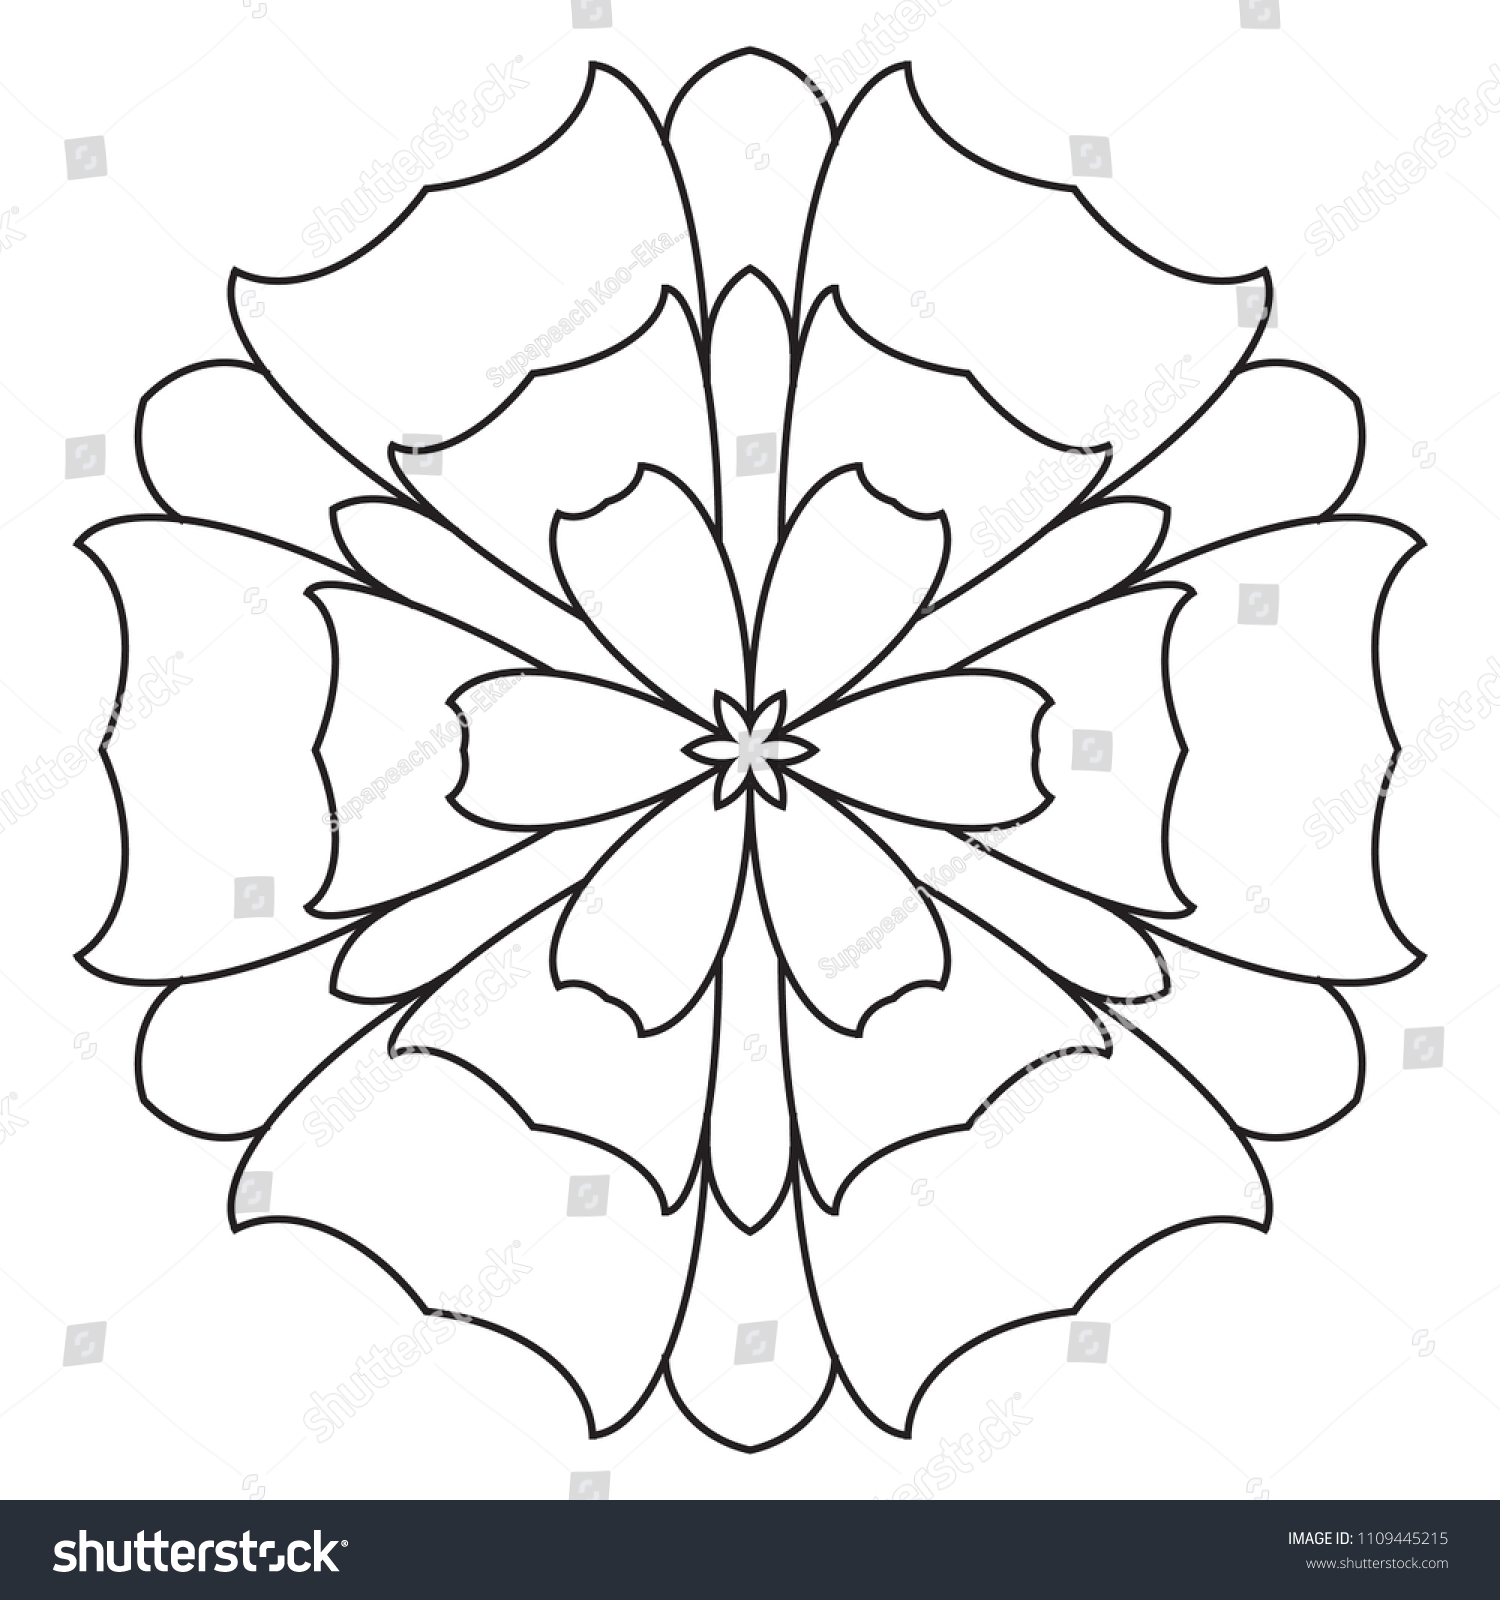 stock photo easy mandalas for beginners mandala pattern for seniors kids and adults doodle pattern flowers